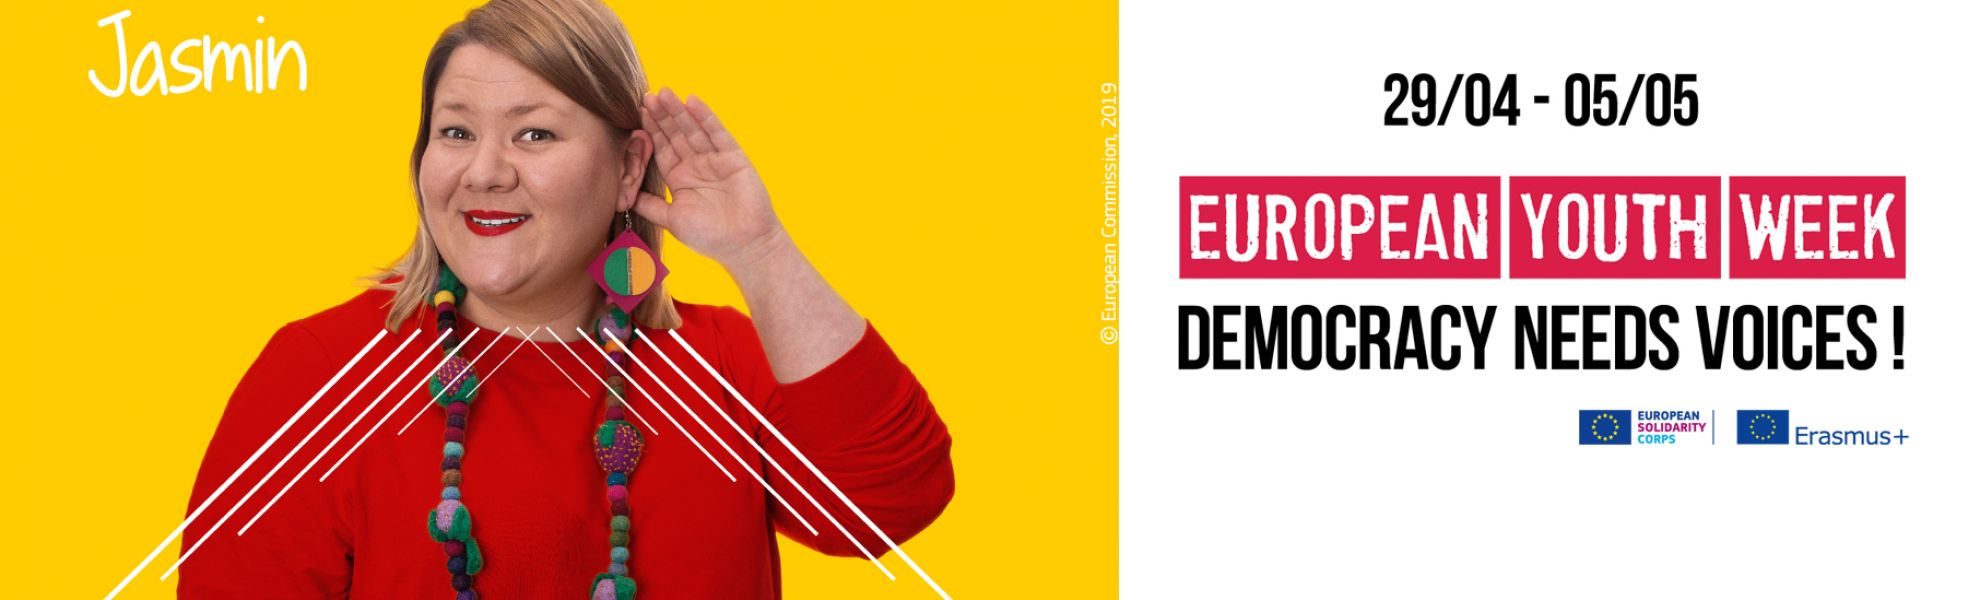 https://europa.eu/youth/sites/default/files/styles/eyp_slider/public/banner-week-b.jpg?itok=pP_tS5Io